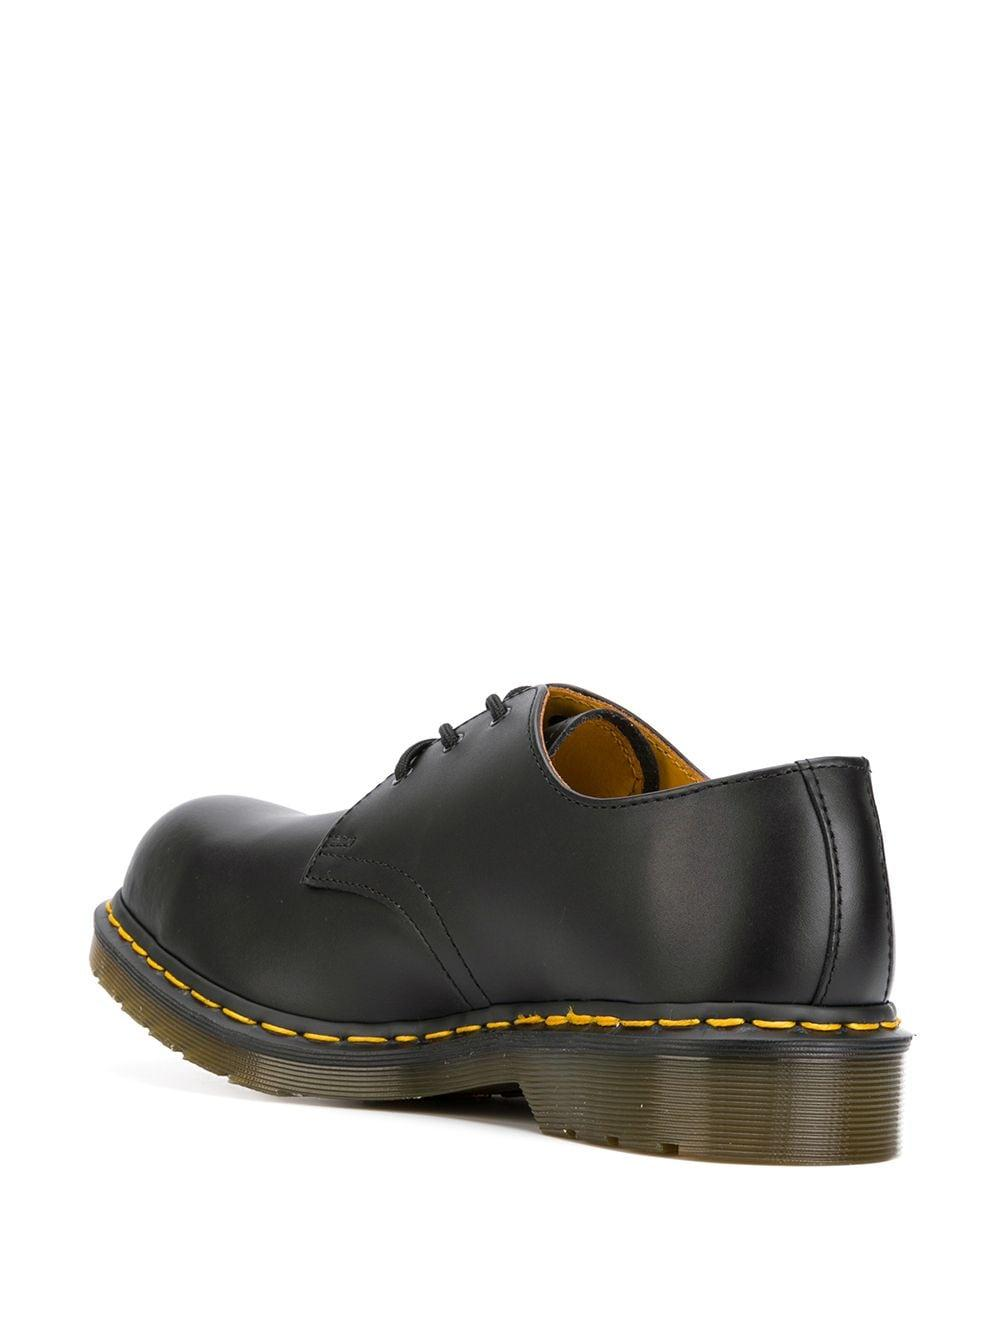 Dr. Martens Leather Chunky Derby Shoes in Black for Men